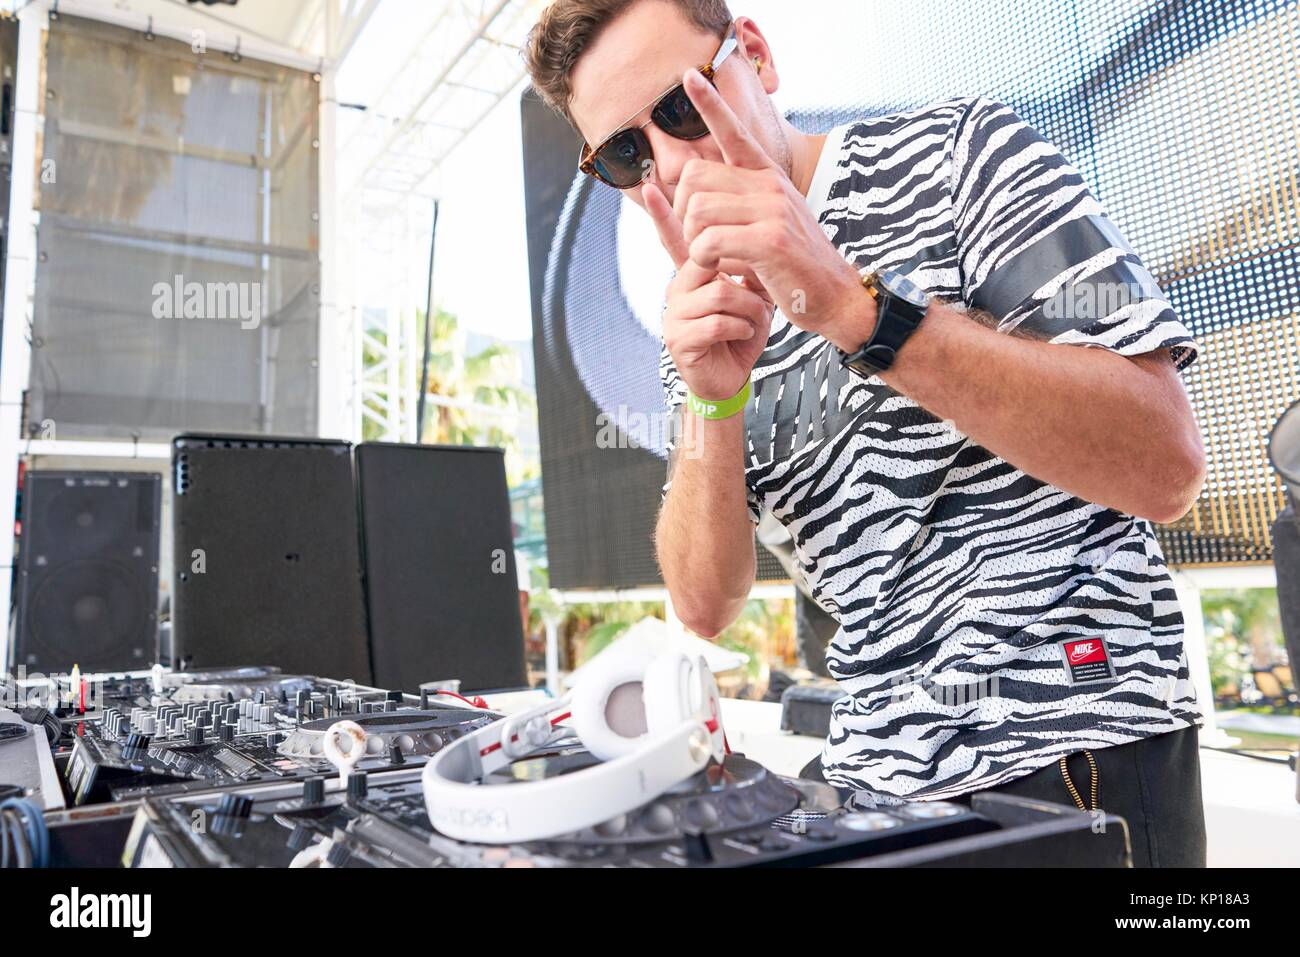 DJ Alpharock at music festival Starbeach in Hersonissos, Crete, Greece, on 24. July 2017 - Stock Image